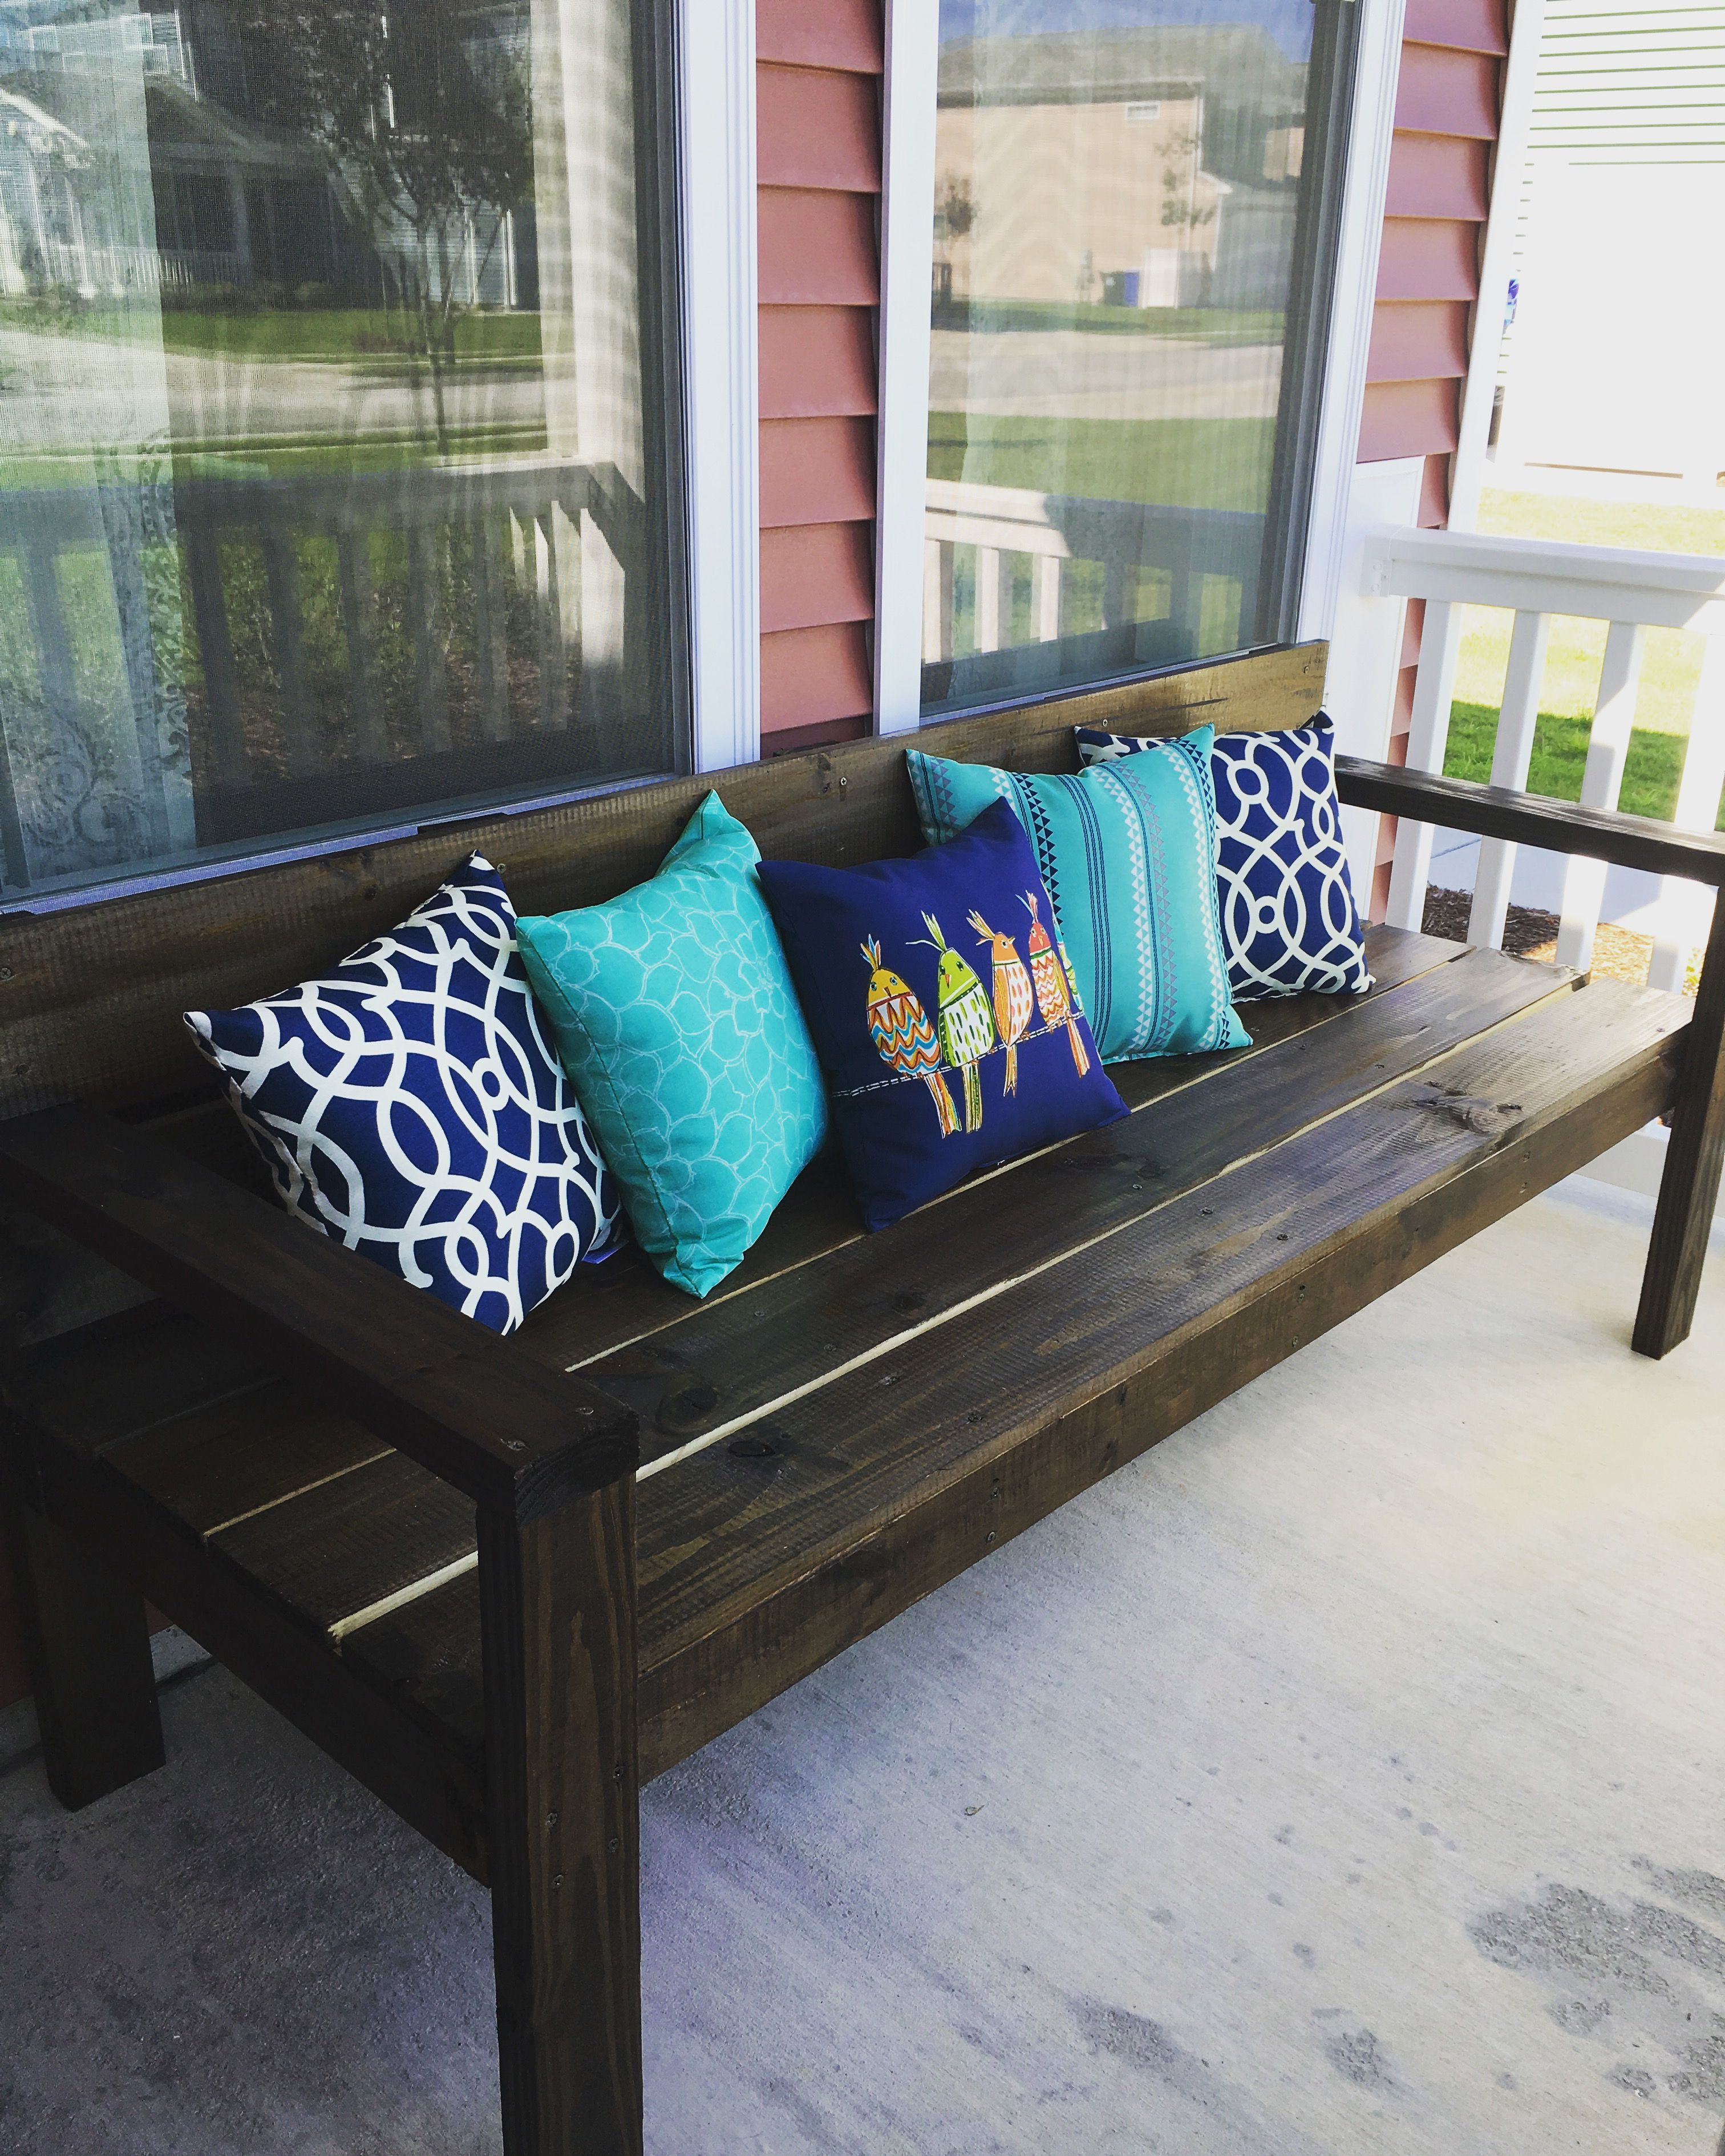 Summer Front Porch Diy Bench Ana White Plans Garage Doors with regard to measurements 3024 X 3779